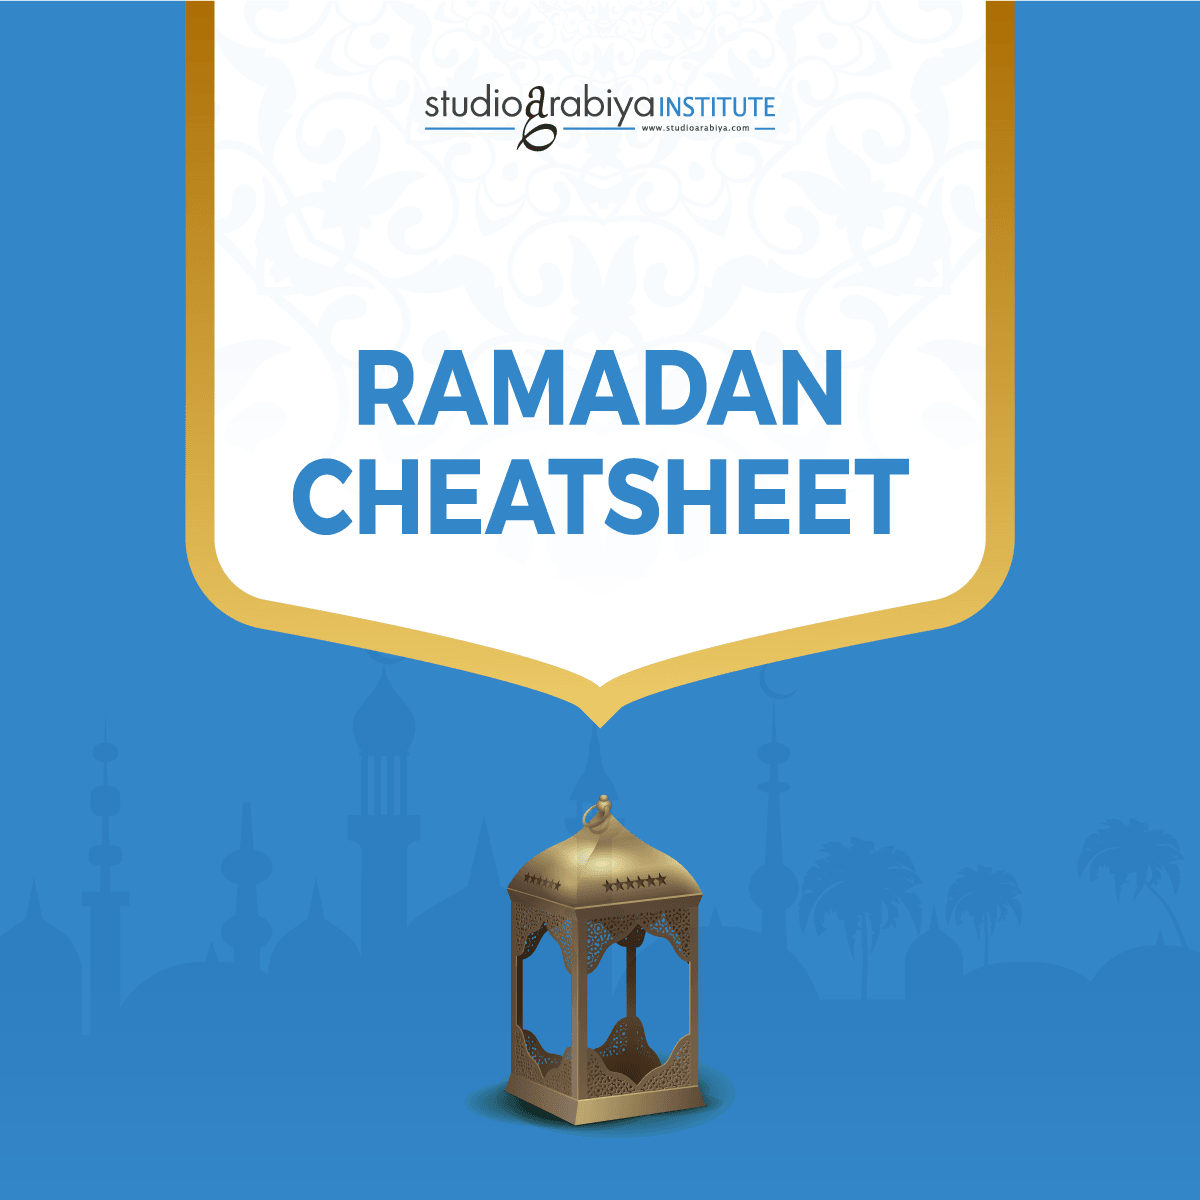 [FREE DOWNLOAD] Ramadan Cheatsheet